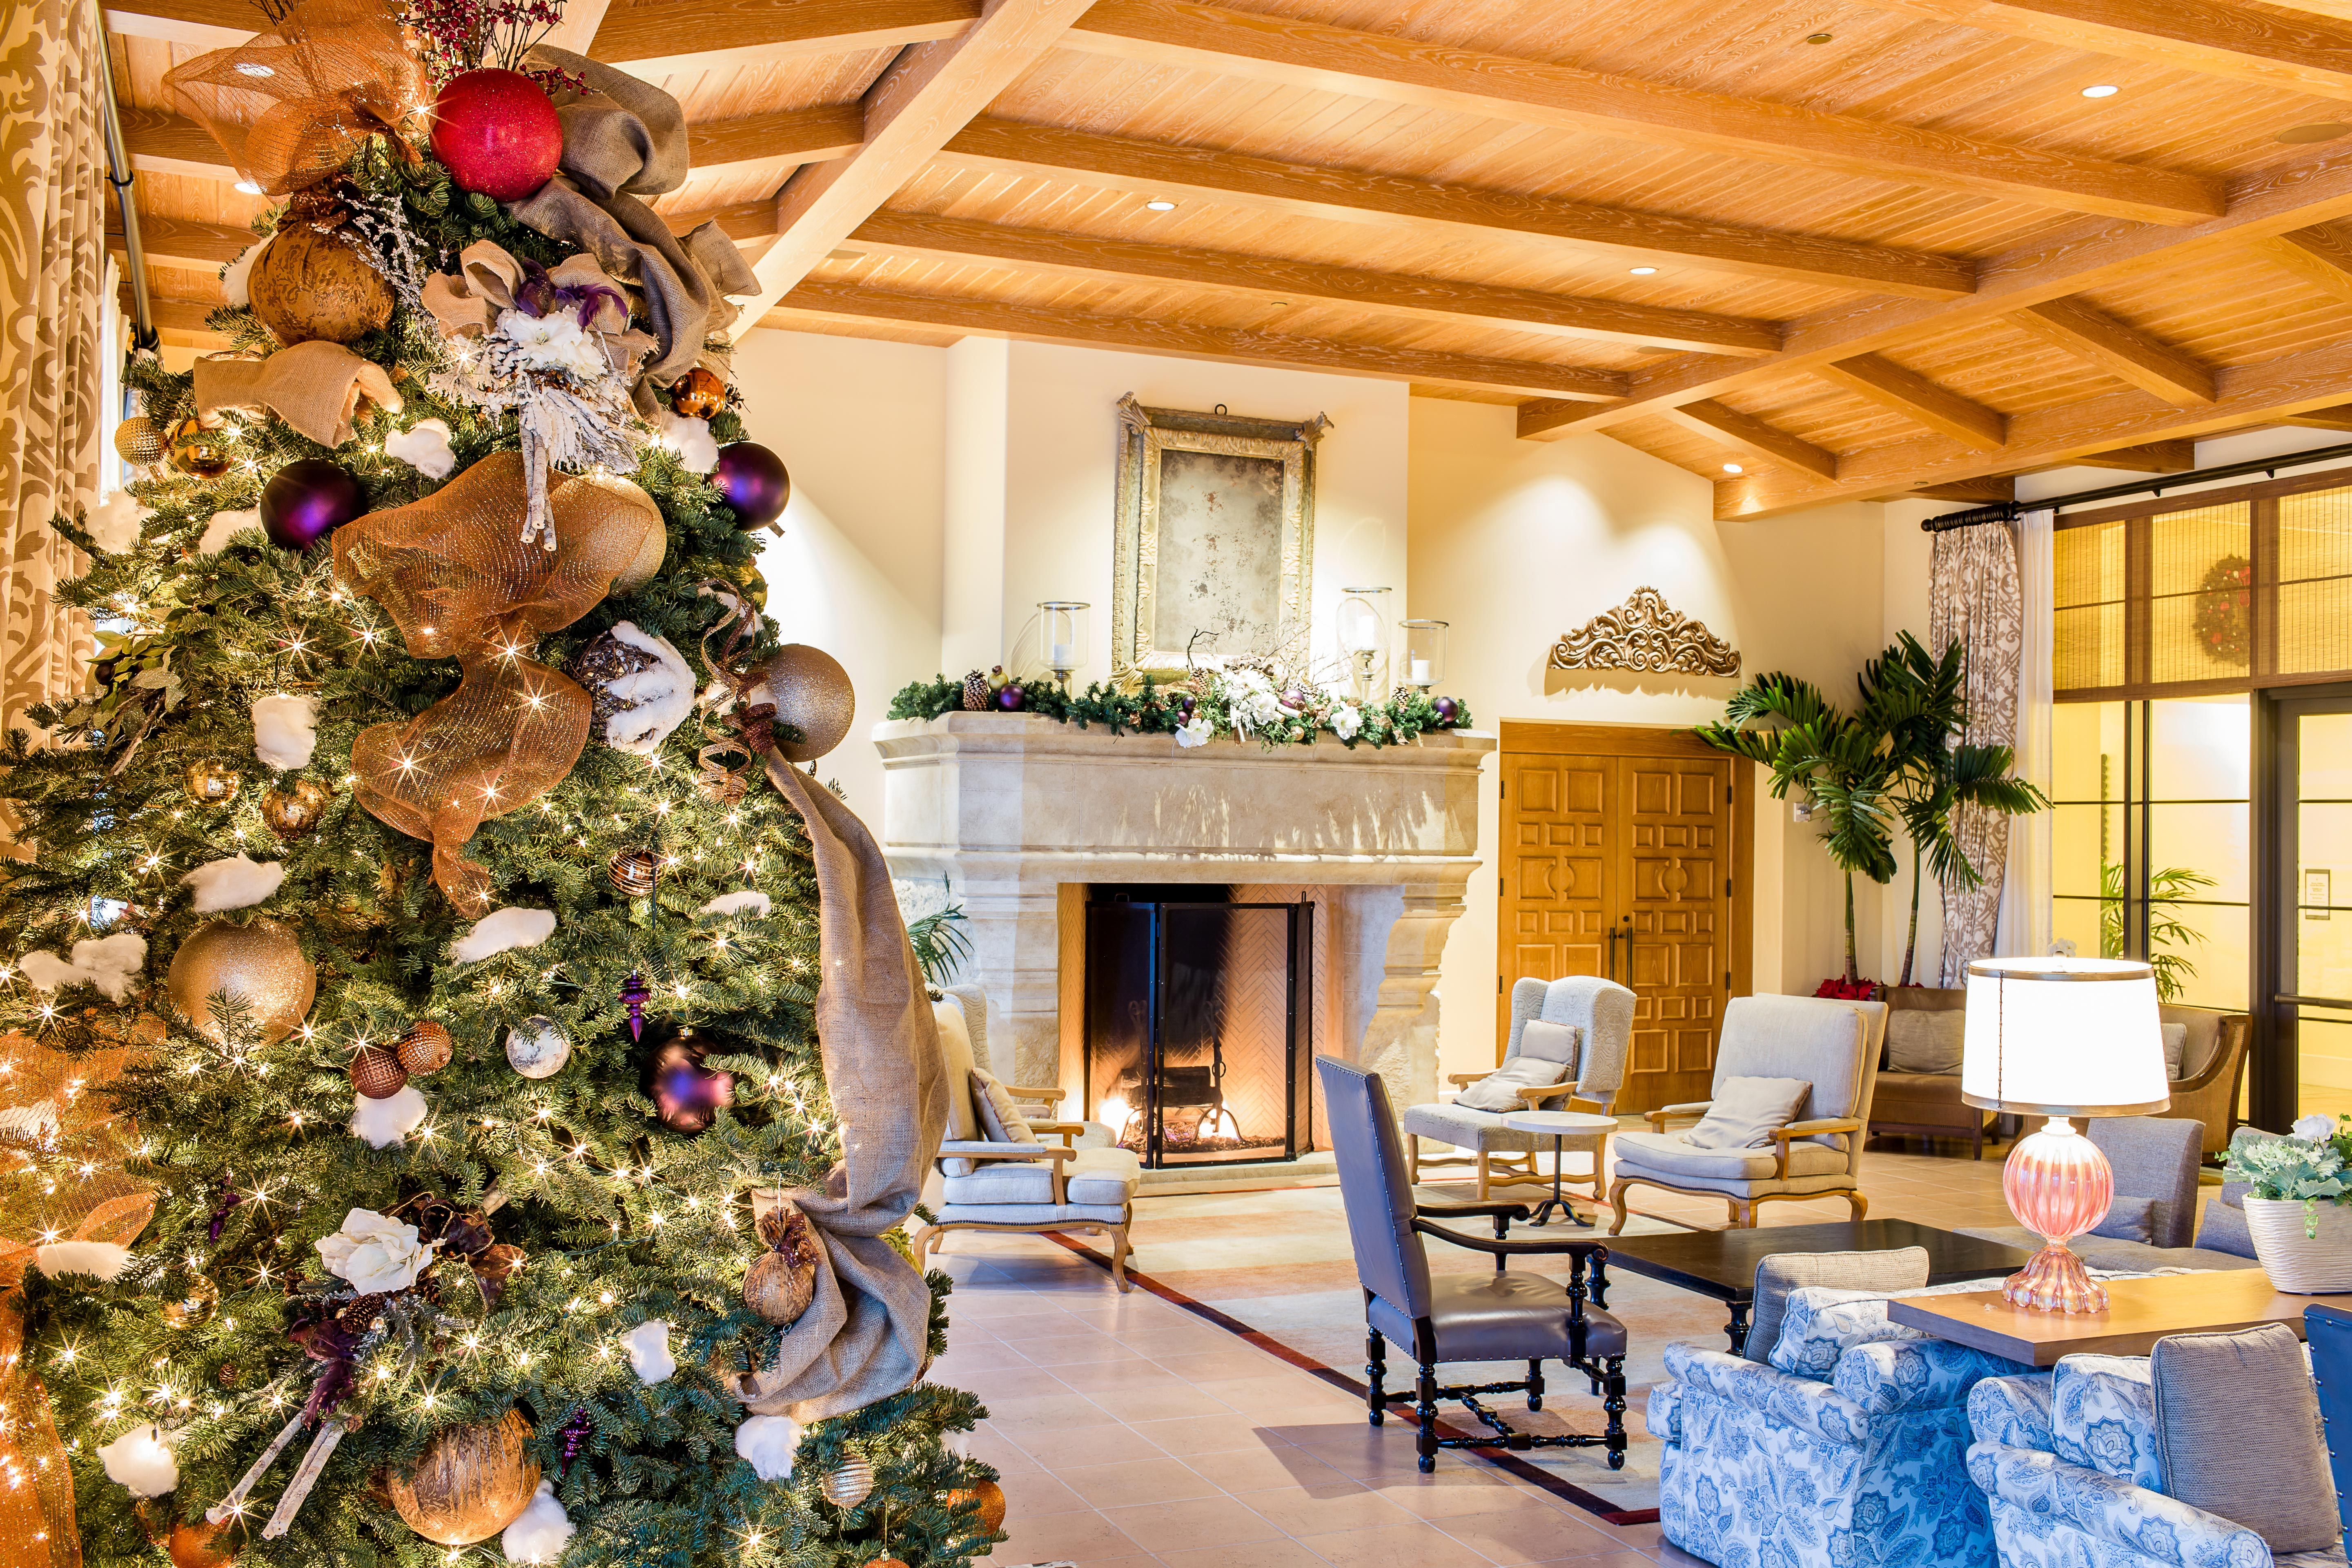 Best Places To Travel For Christmas 2021